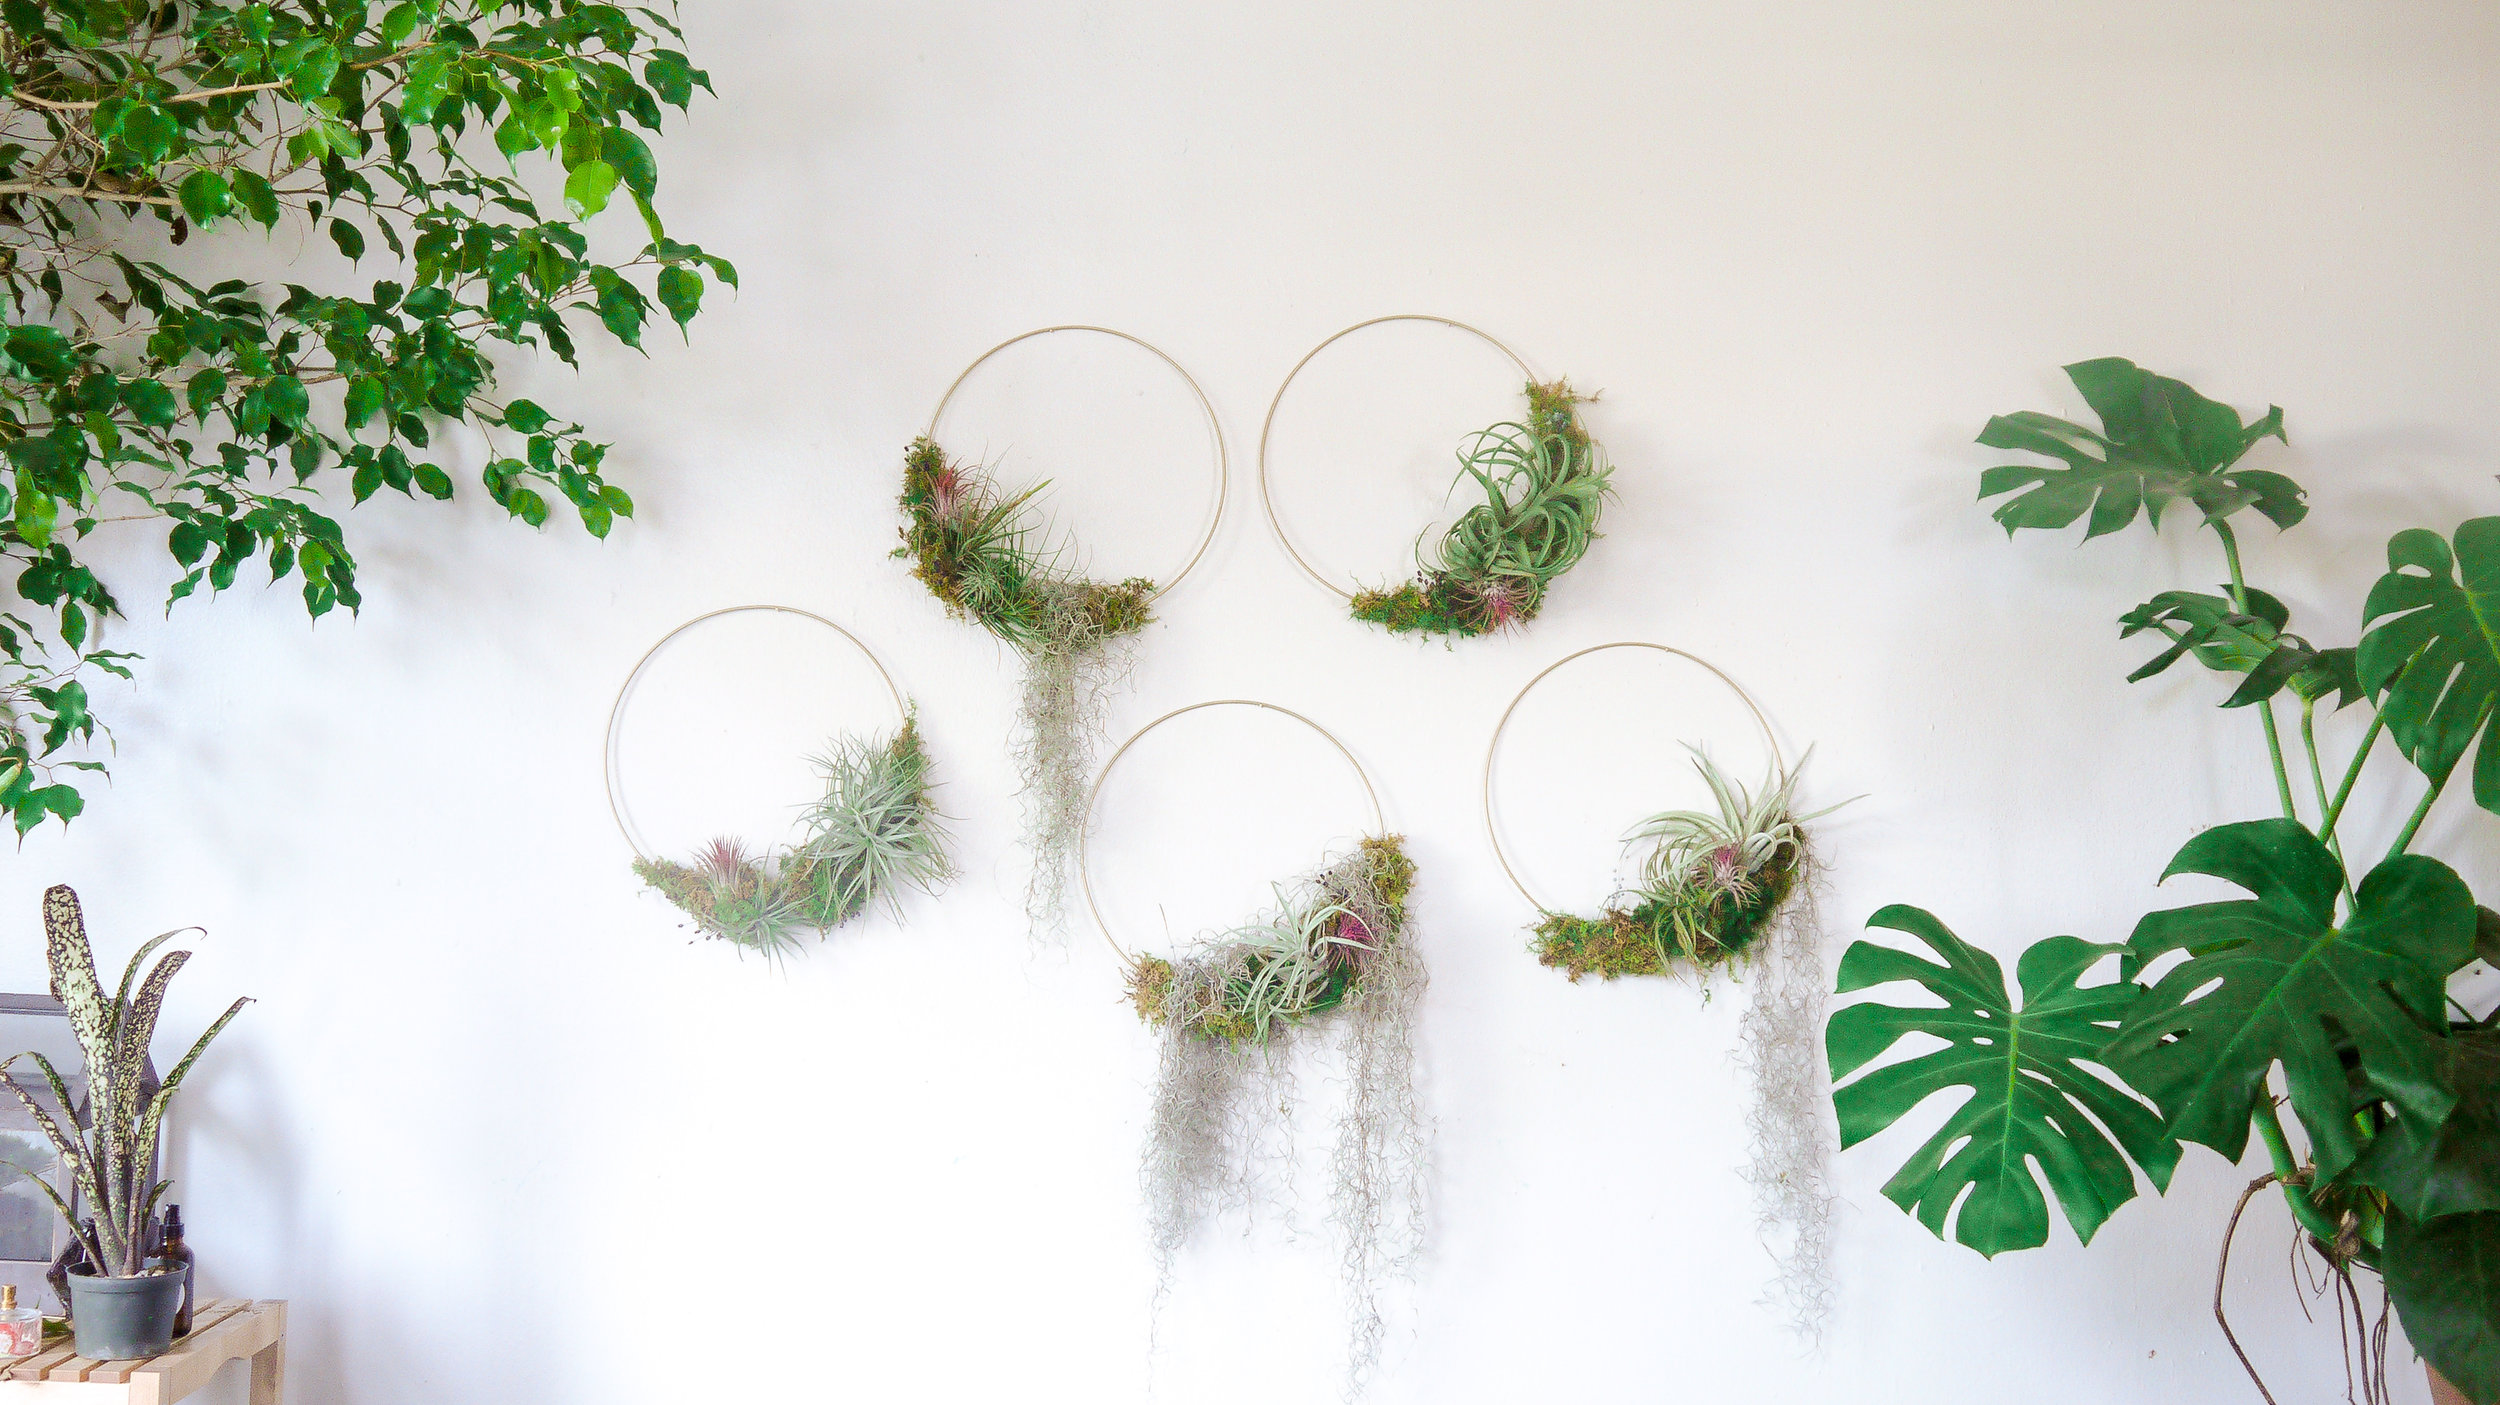 Modern Tillandsia Wreath Workshop - Learn how to craft a modern Tillandsia wreath.  This minimal wreath style incorporates preserved moss, dried flowers and live Tillandsias (air plants).